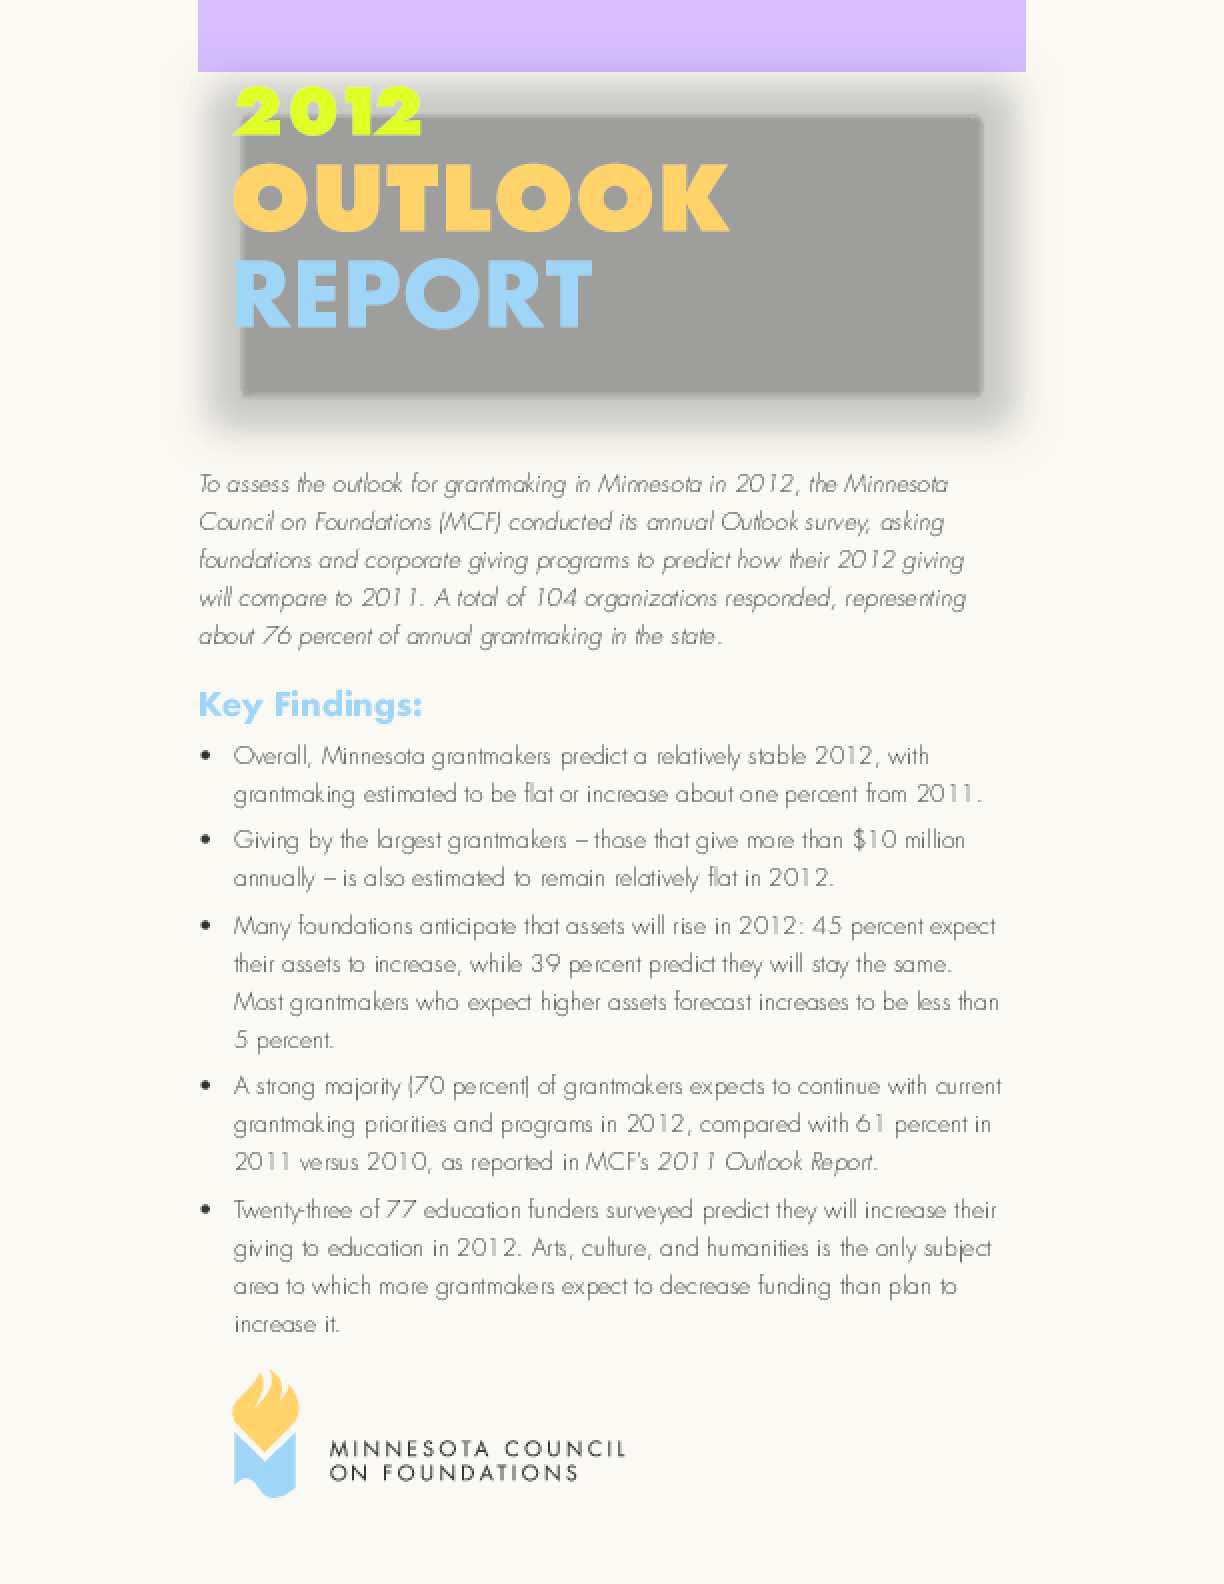 2012 Outlook Report